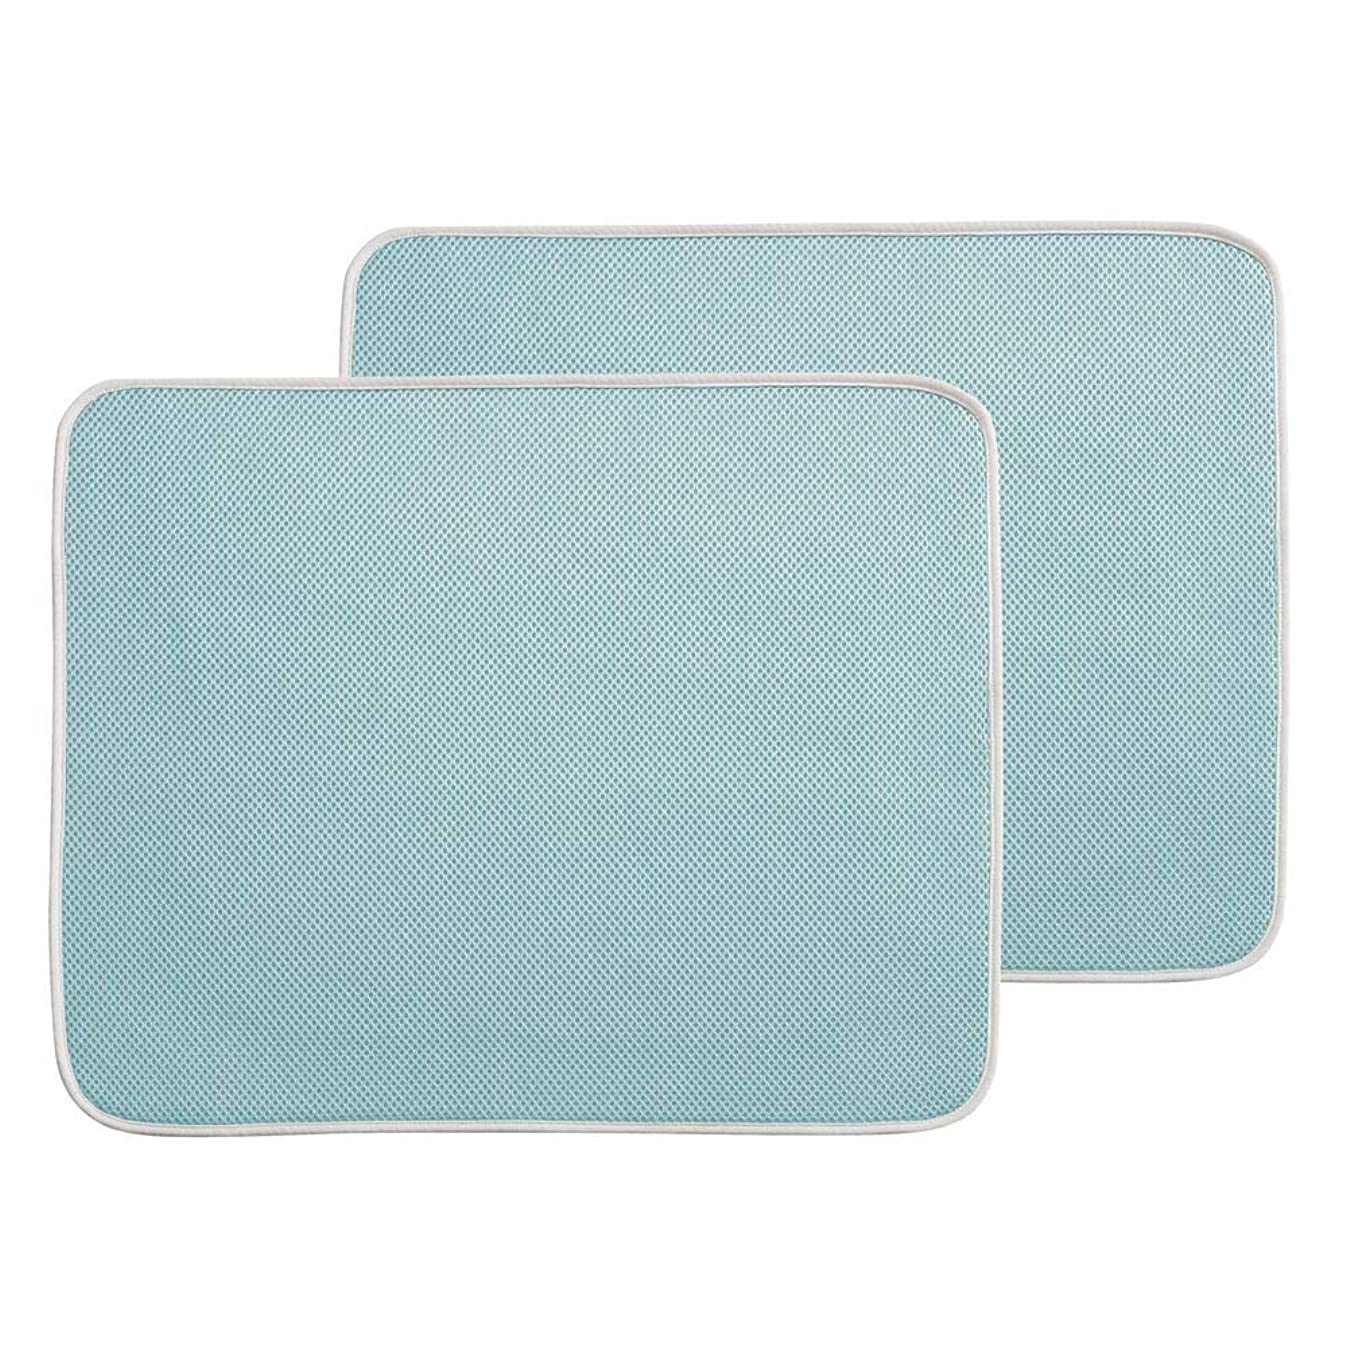 mDesign Kitchen Countertop Absorbent Dish Drying Mat - Pack of 2, Large, Aqua Blue/Ivory